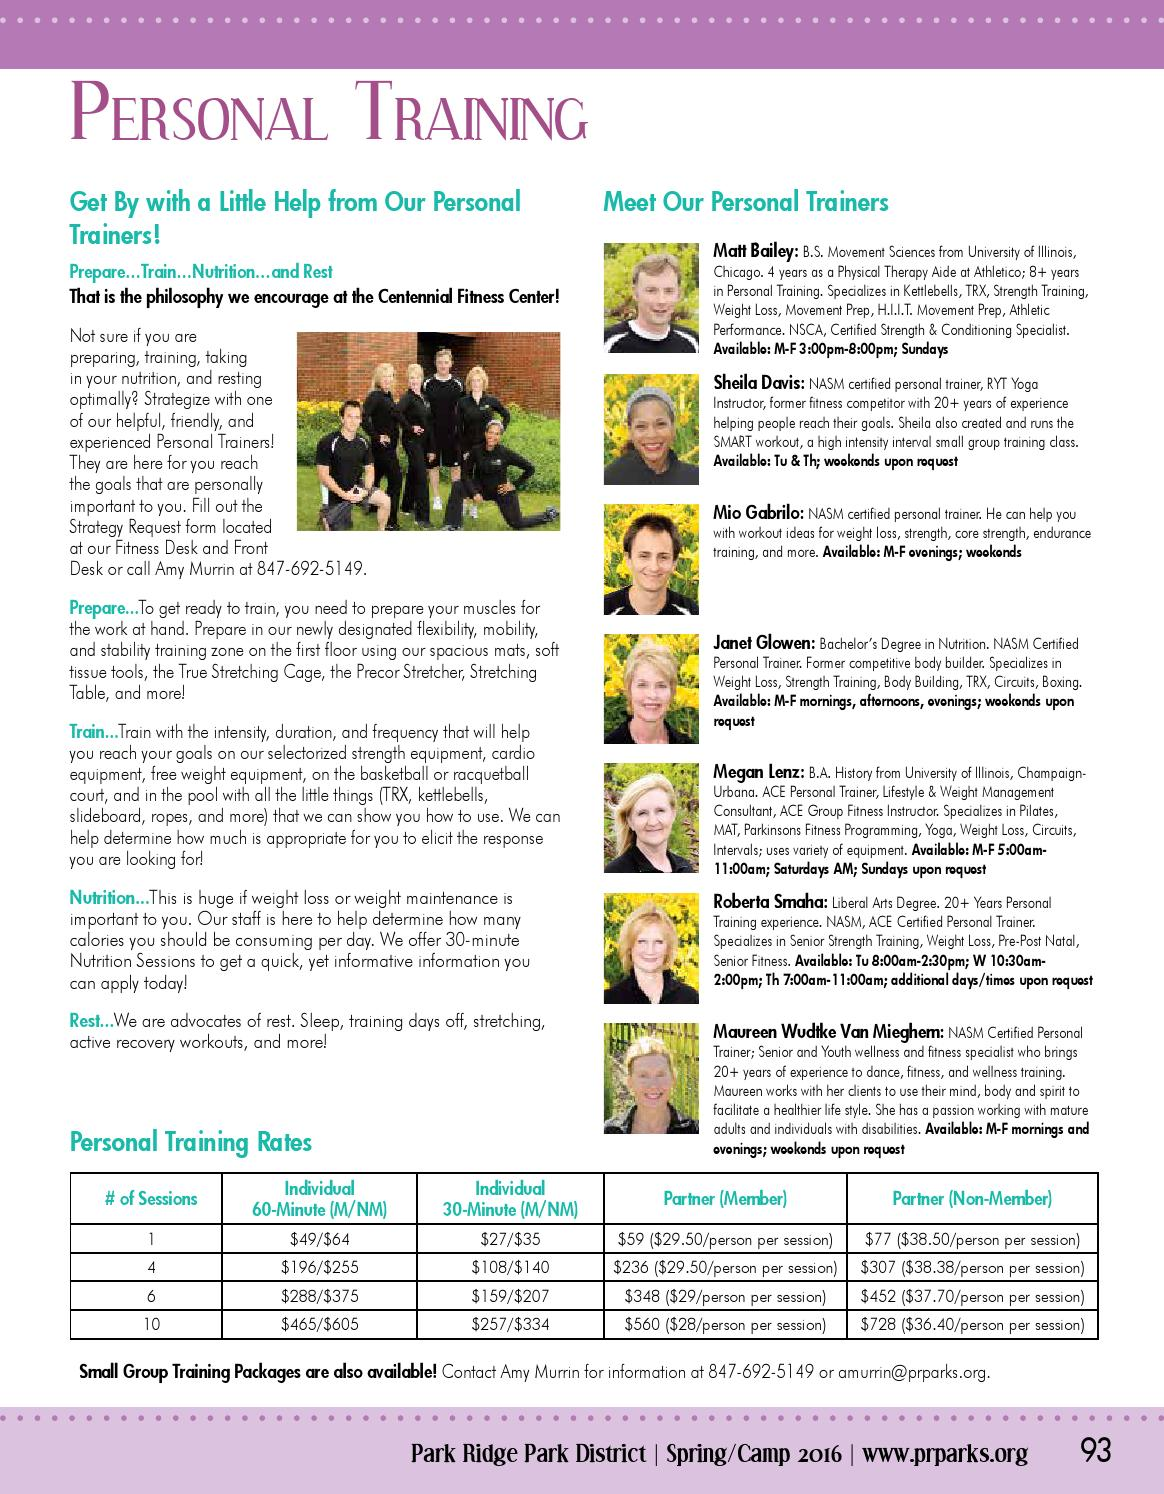 Spring Camp Brochure 2016 By Park Ridge Park District Issuu